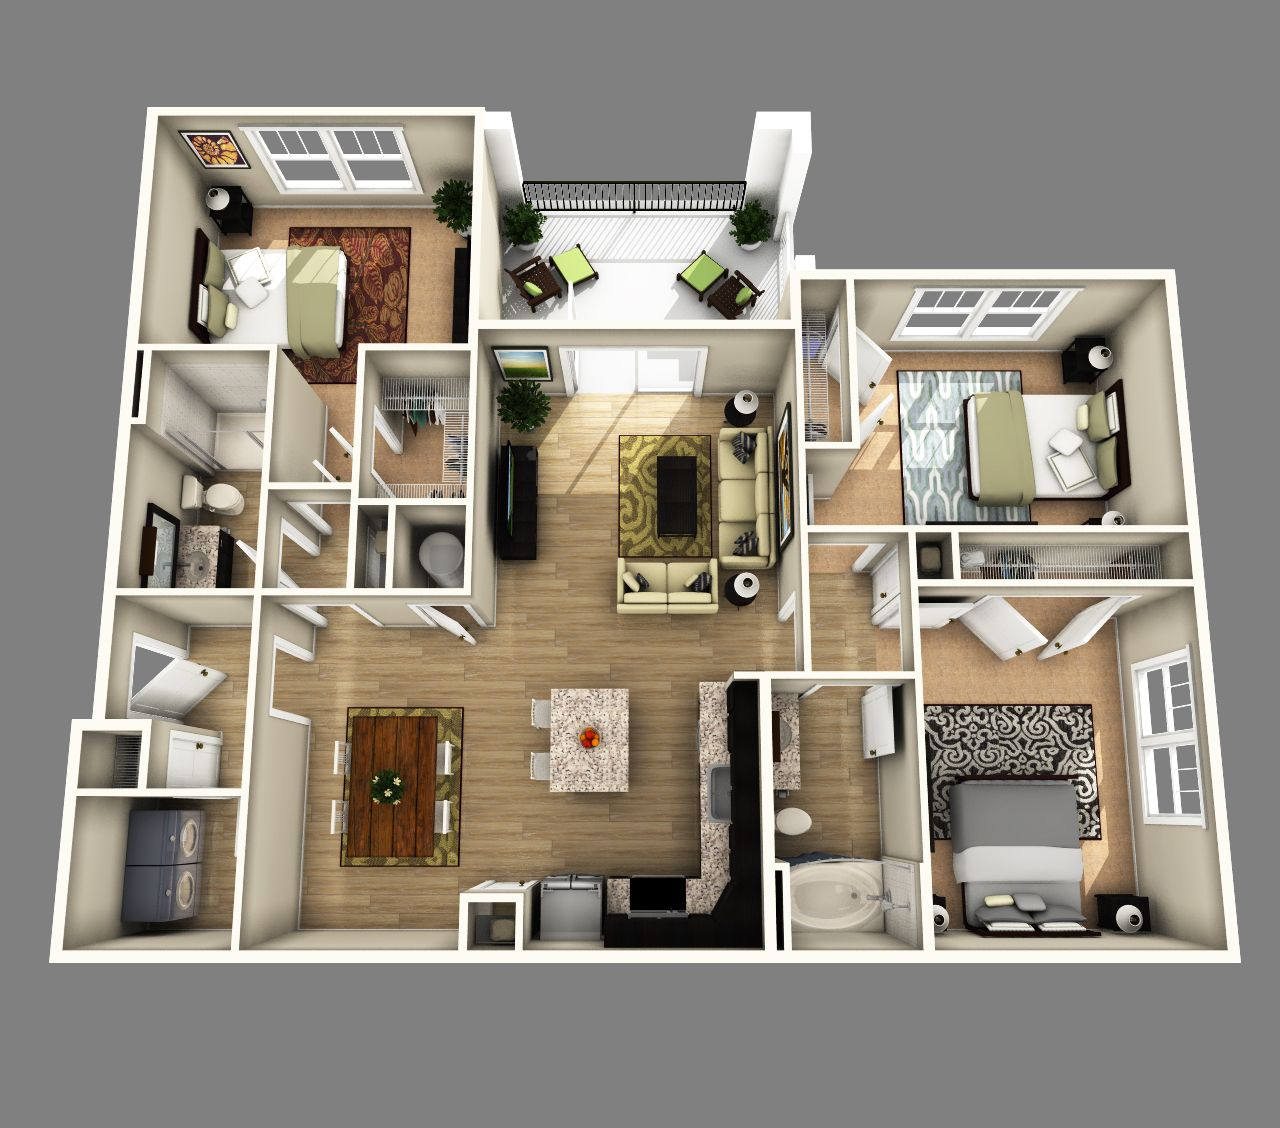 3 Bedrooms Apartments  http www designbvild com 4350 bedrooms